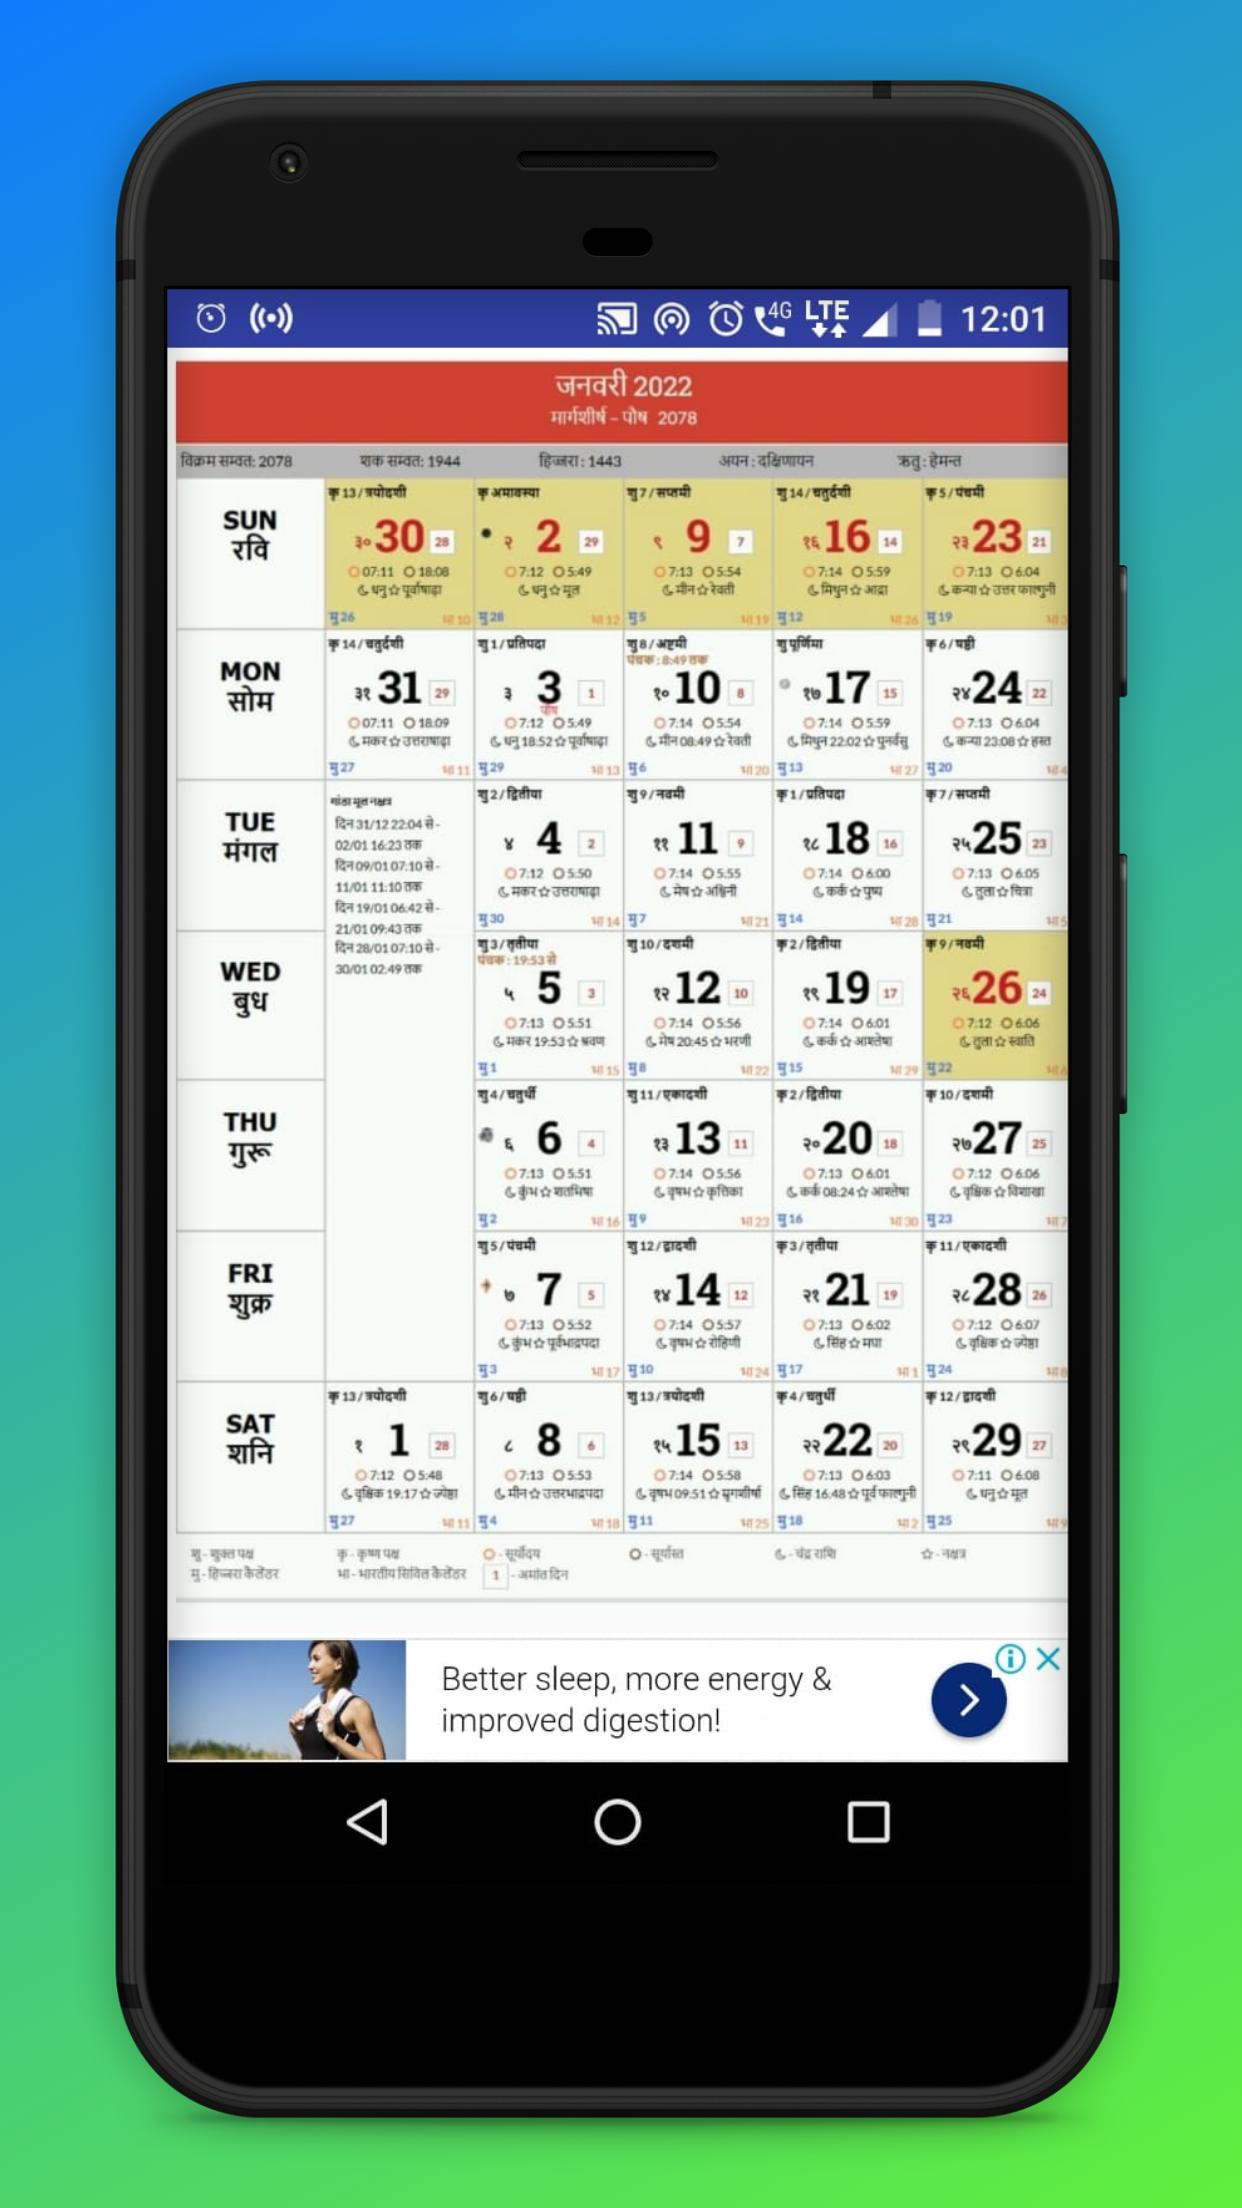 2022 Calendar Hindi Calendar 2022 With Festival For Android Apk Download